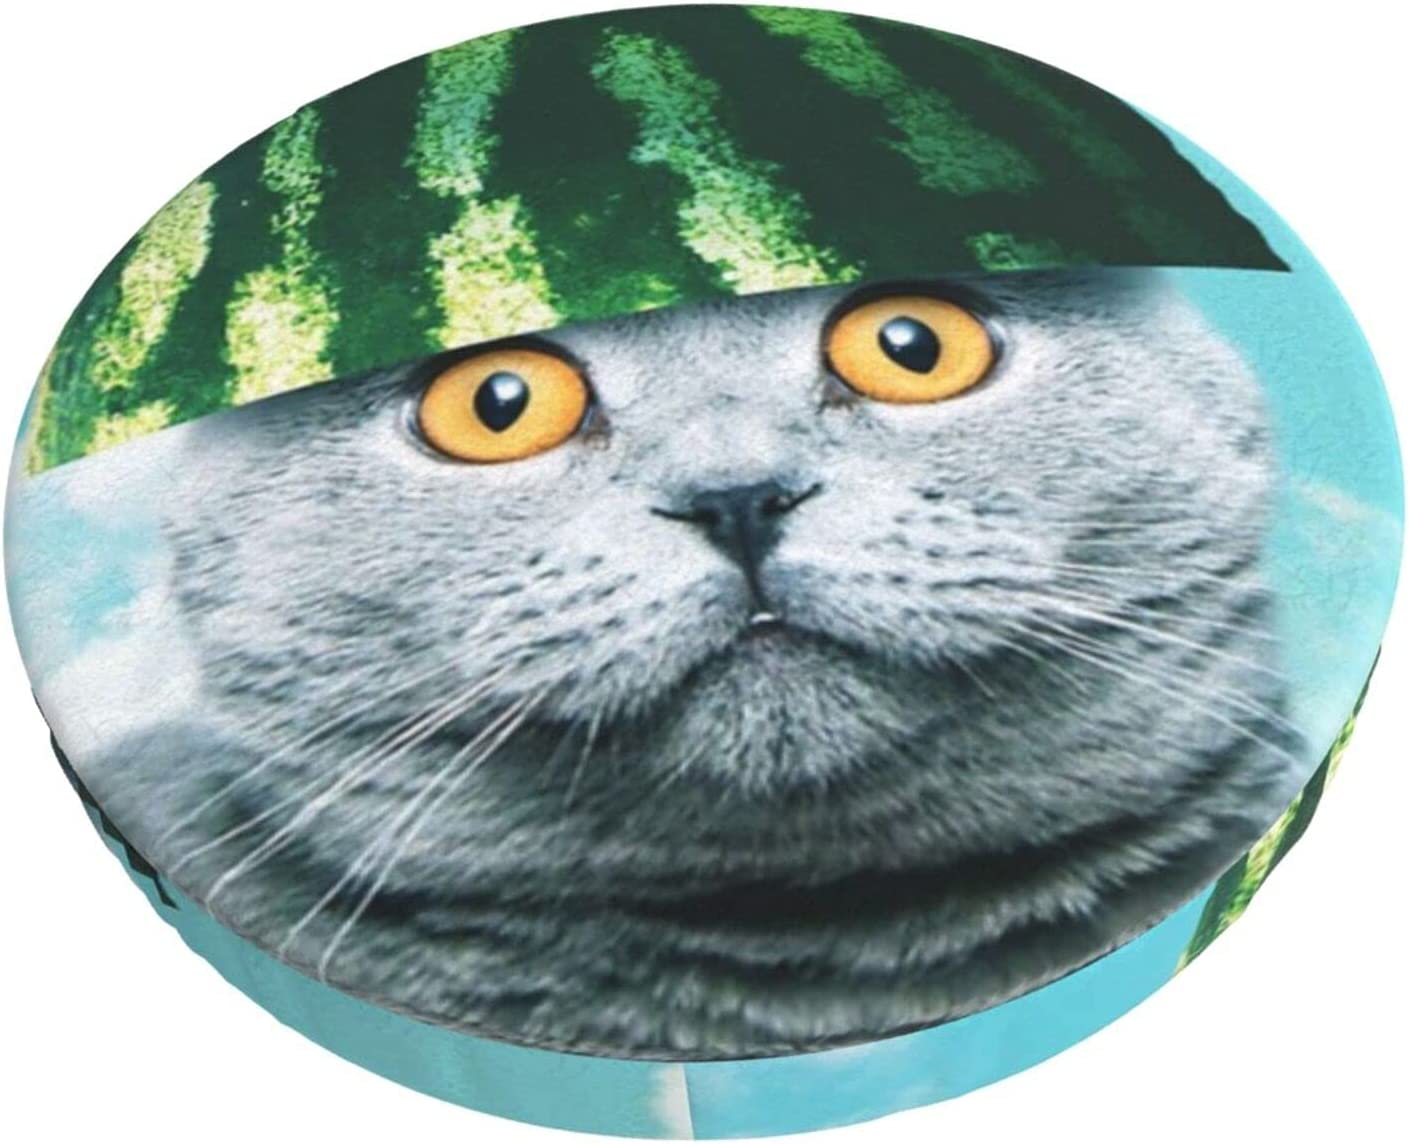 Outstanding Funny Watermelon Cat Sky Cute Round Bar Lounge Pa Stool Club Over item handling